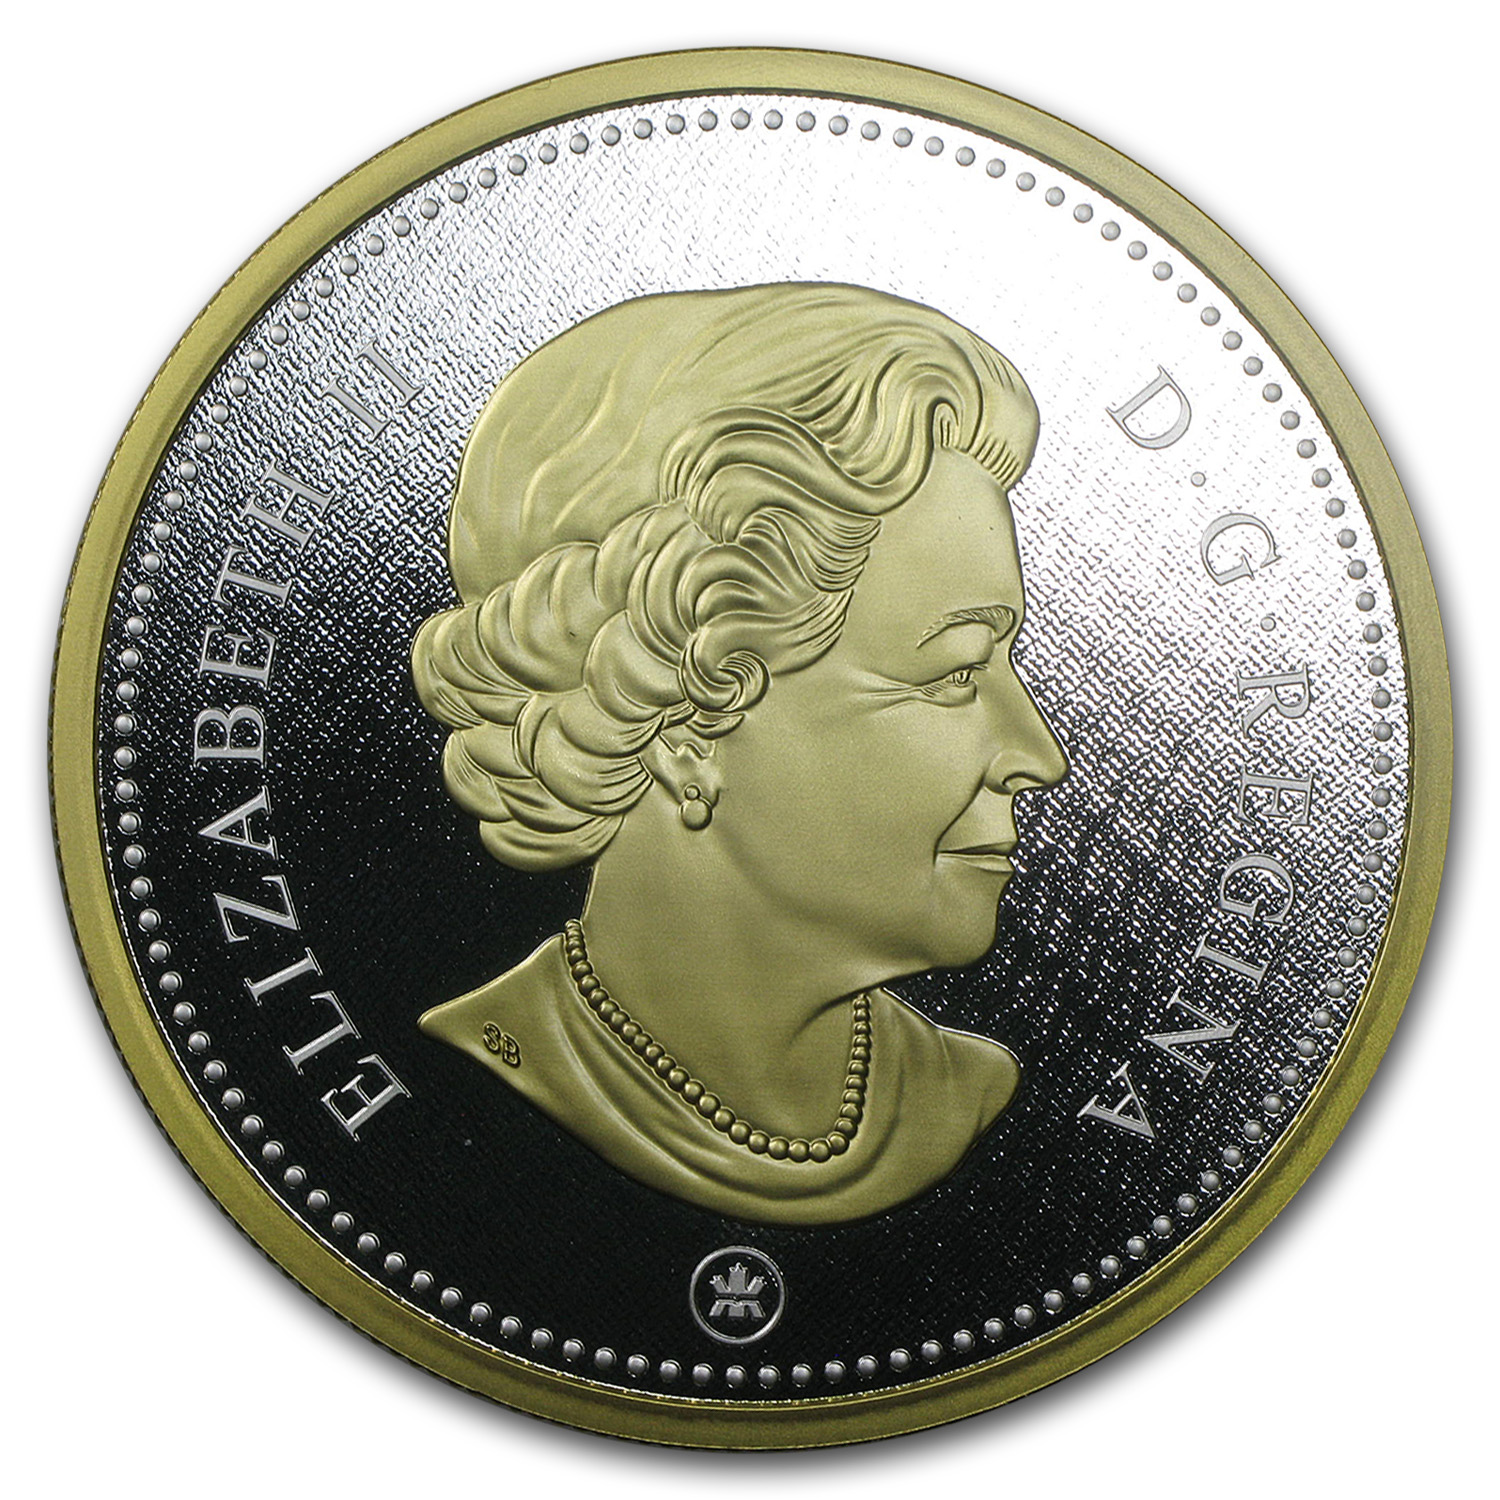 2015 Canada 5 oz Proof Silver Big Coin Series (10 Cent Coin)